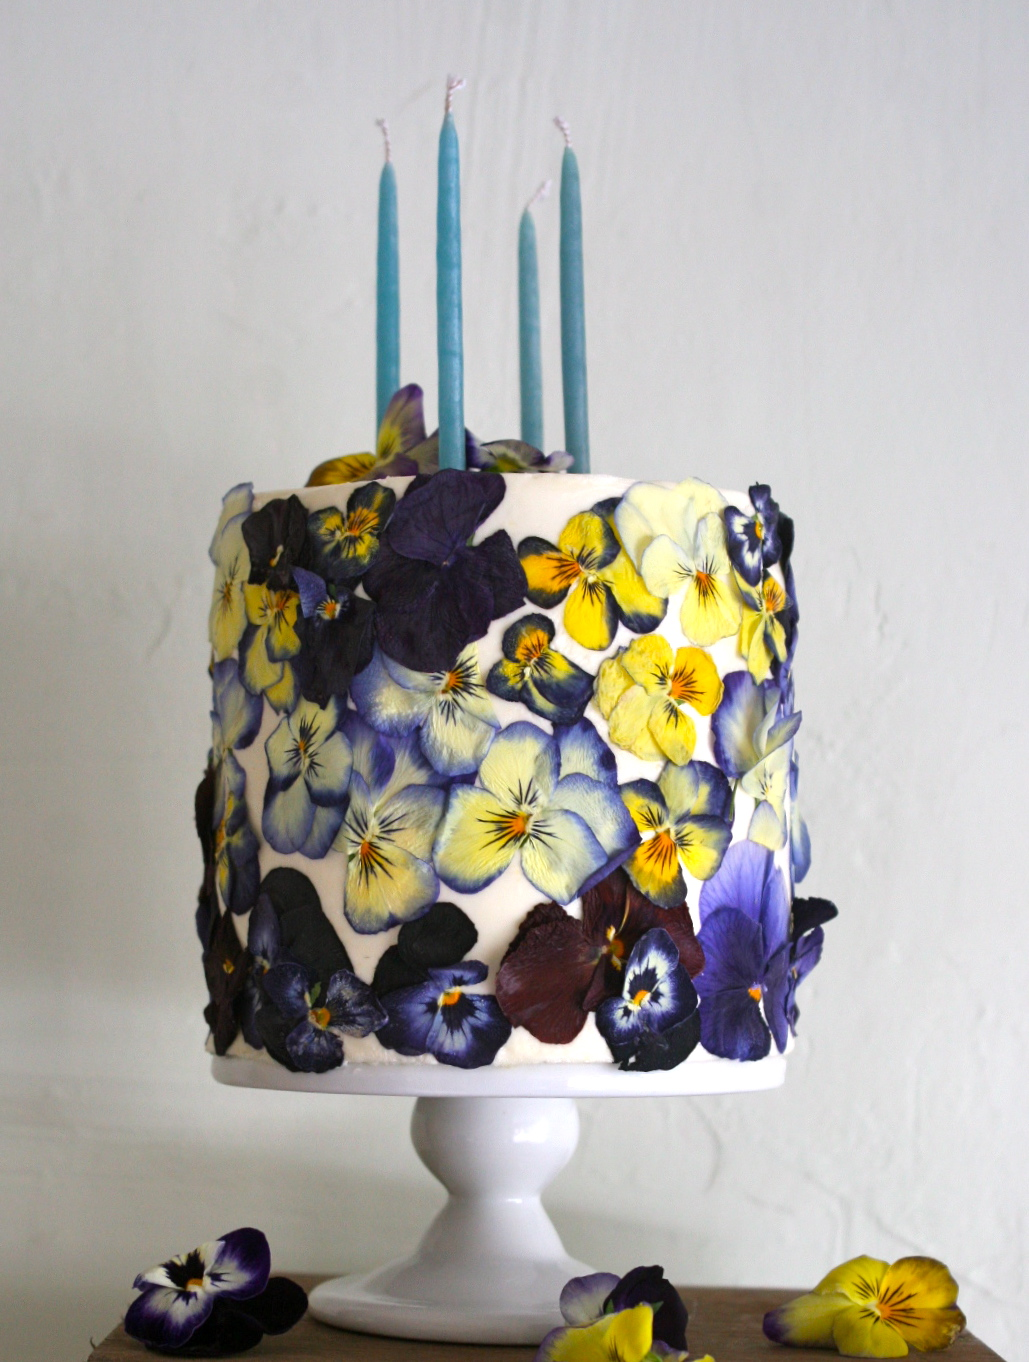 pressed edible flower cake by Cake Bloom | Sonoma, California